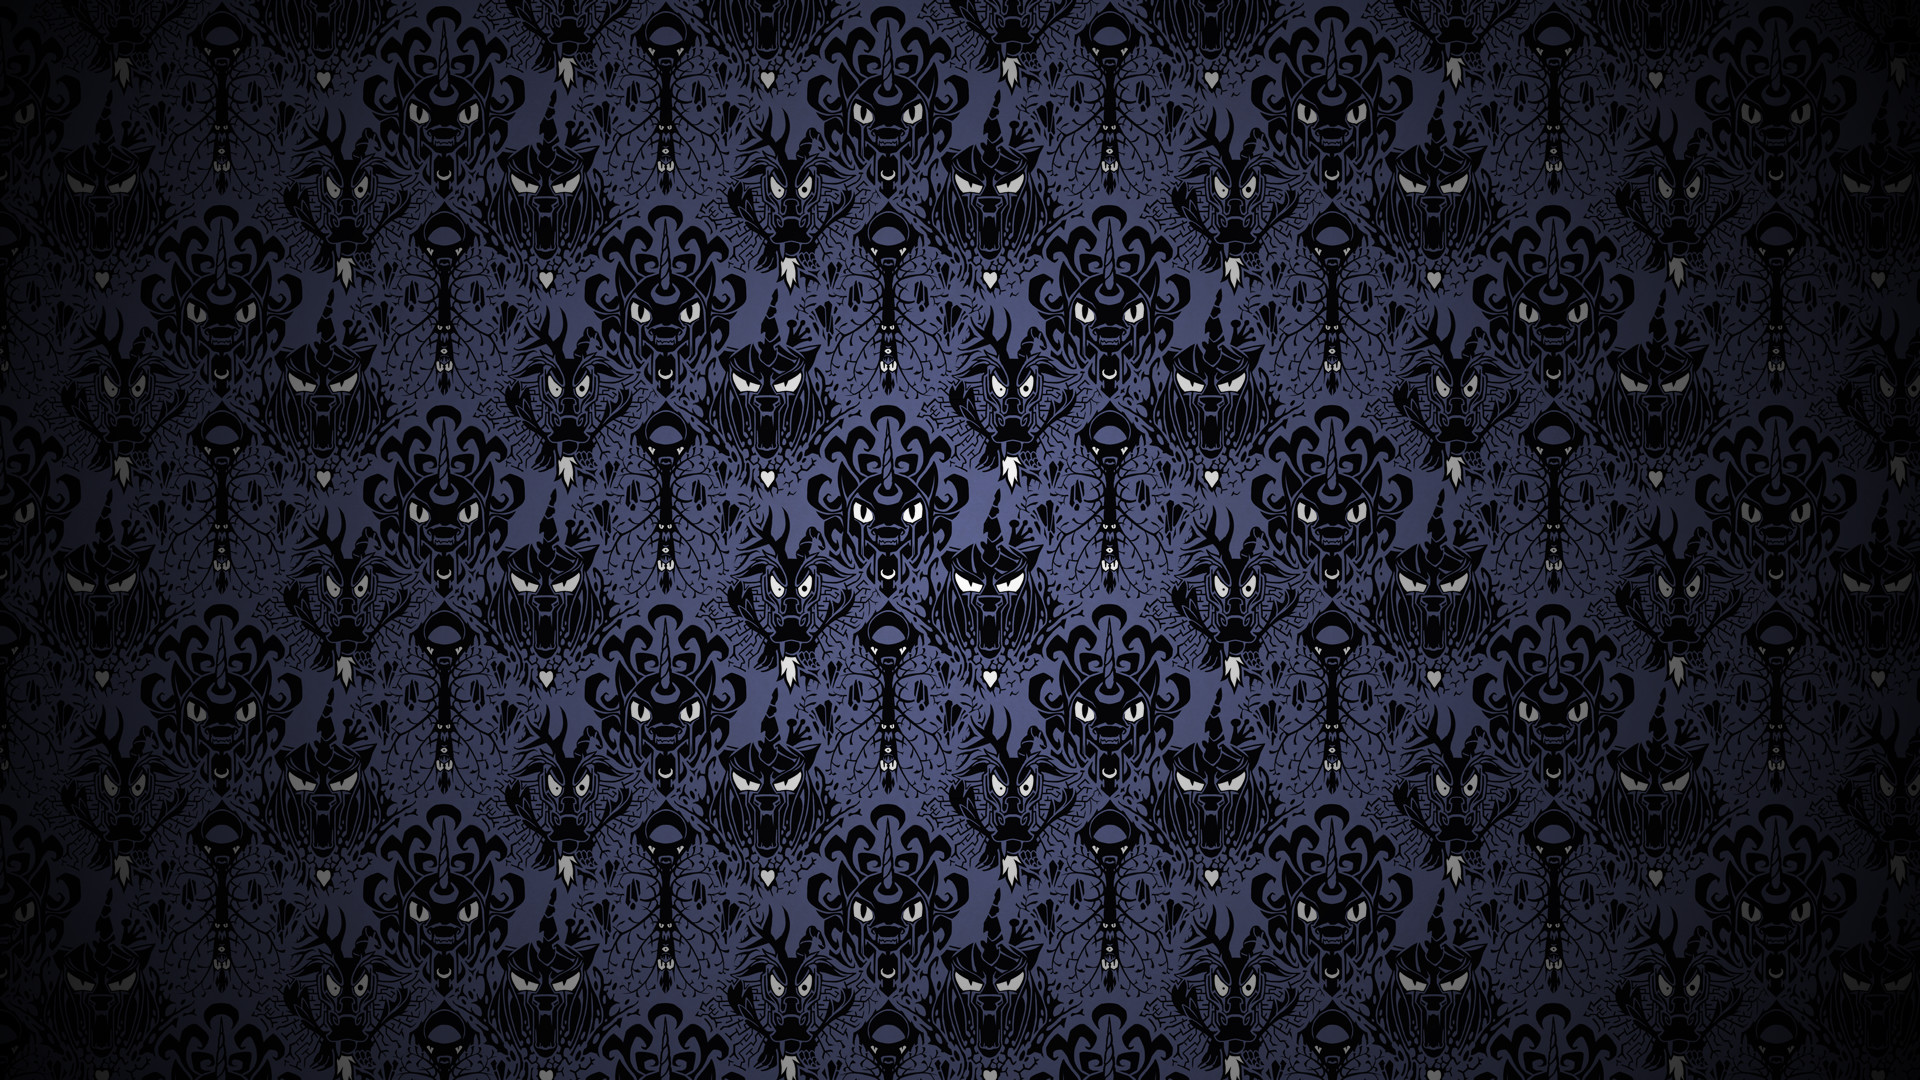 Disney Haunted Mansion Halloween Wallpaper Images & Pictures – Becuo